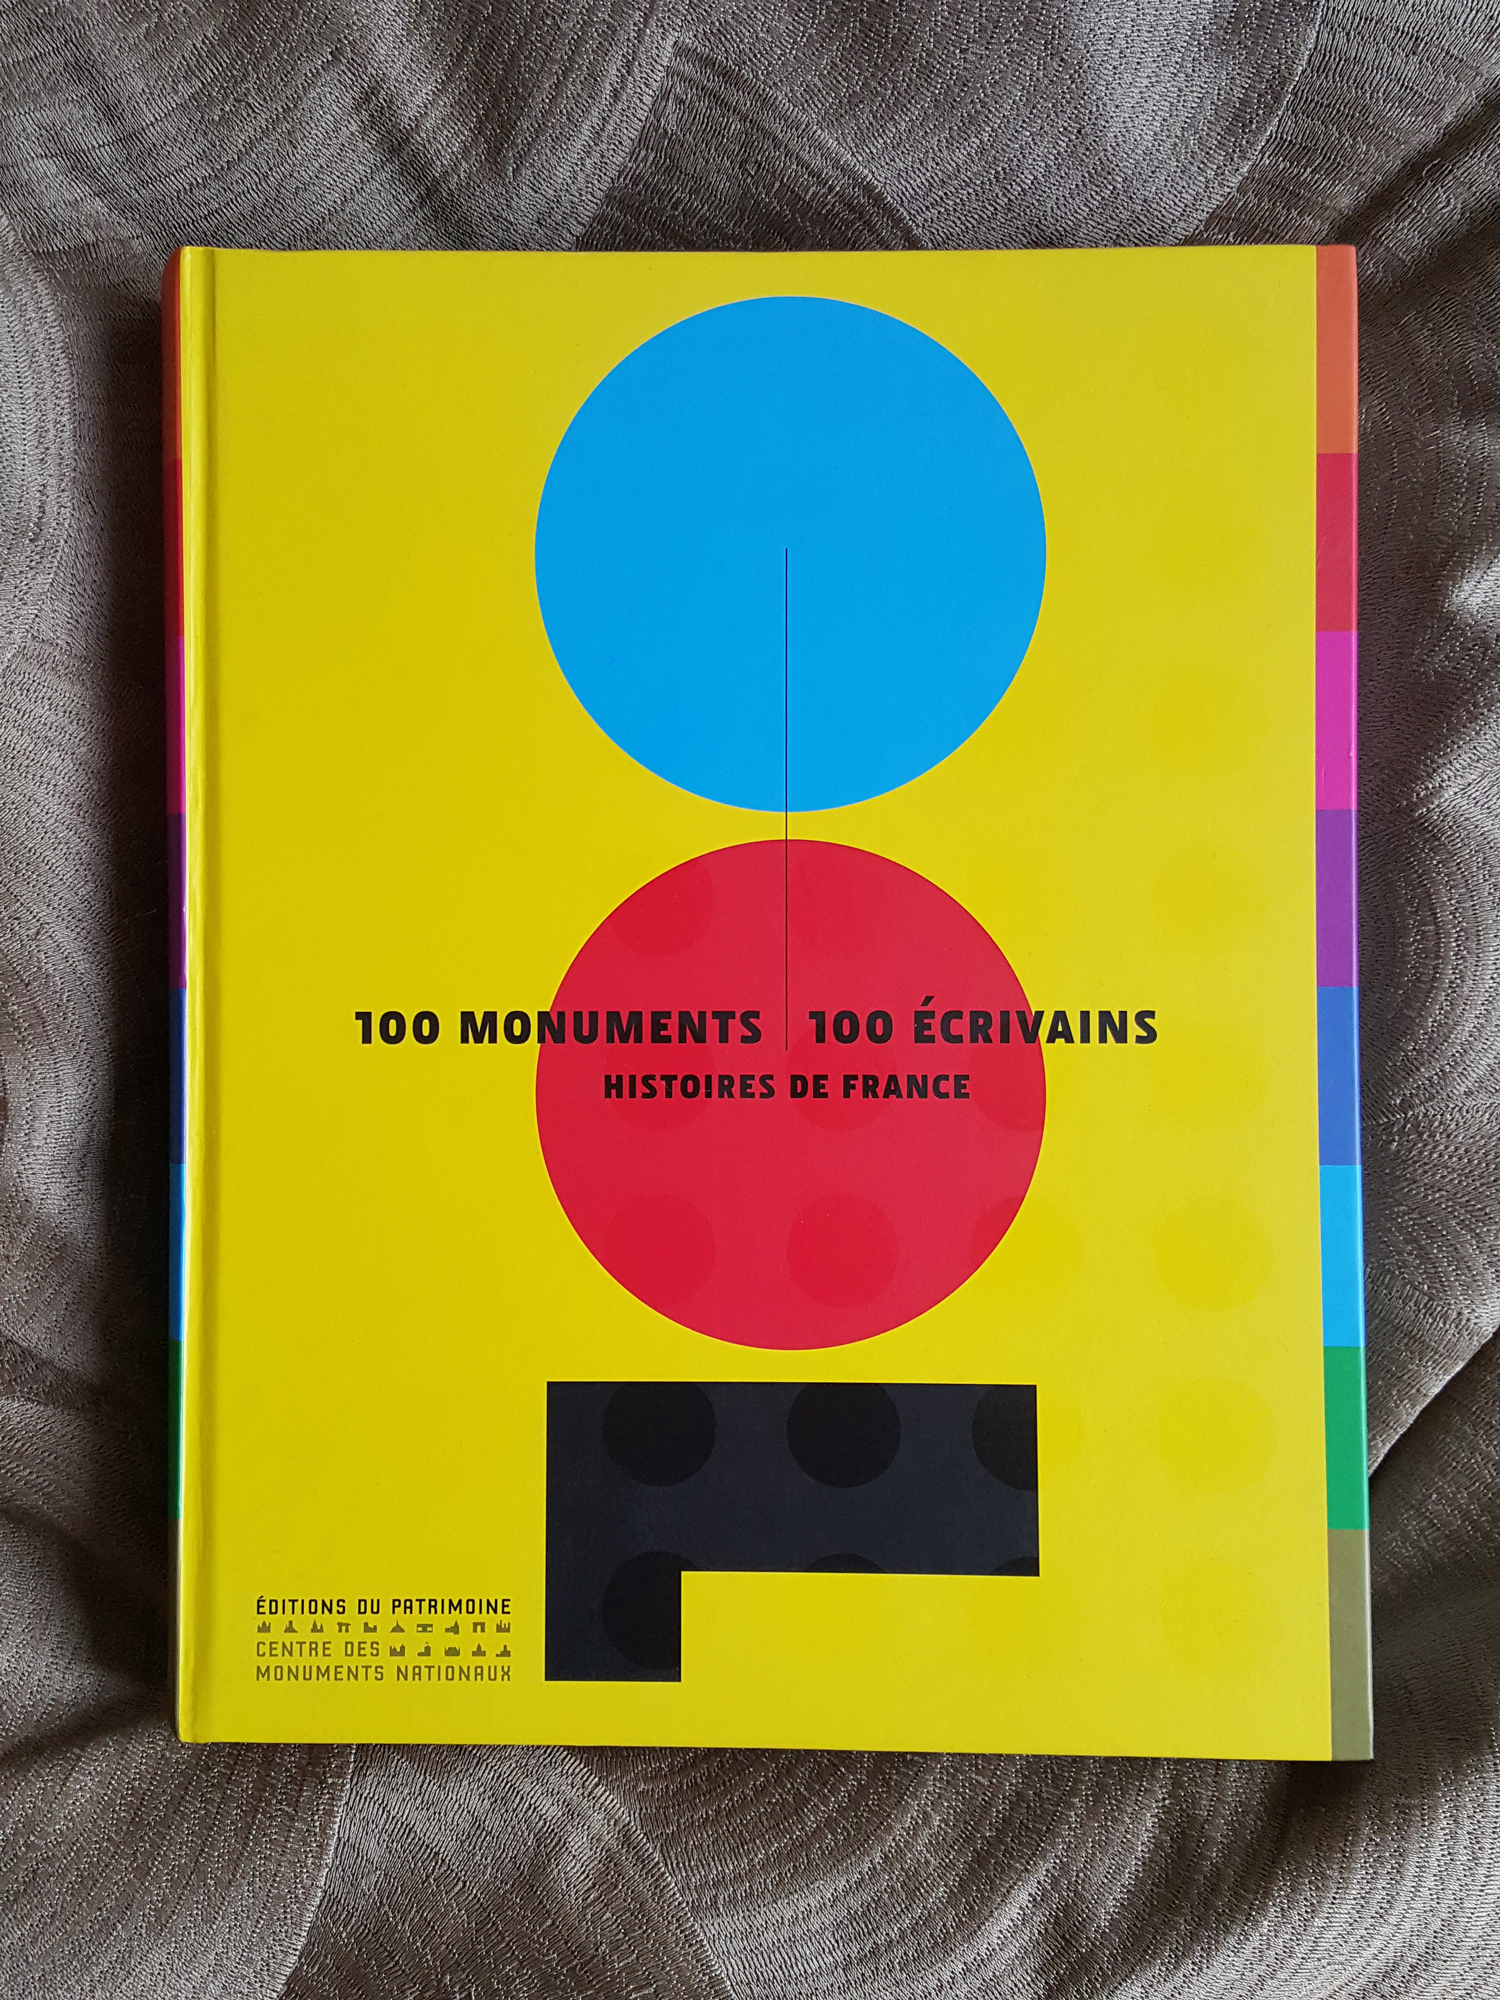 100 monuments, 100 writers / Stories of France, Patrimoine editions, CMN